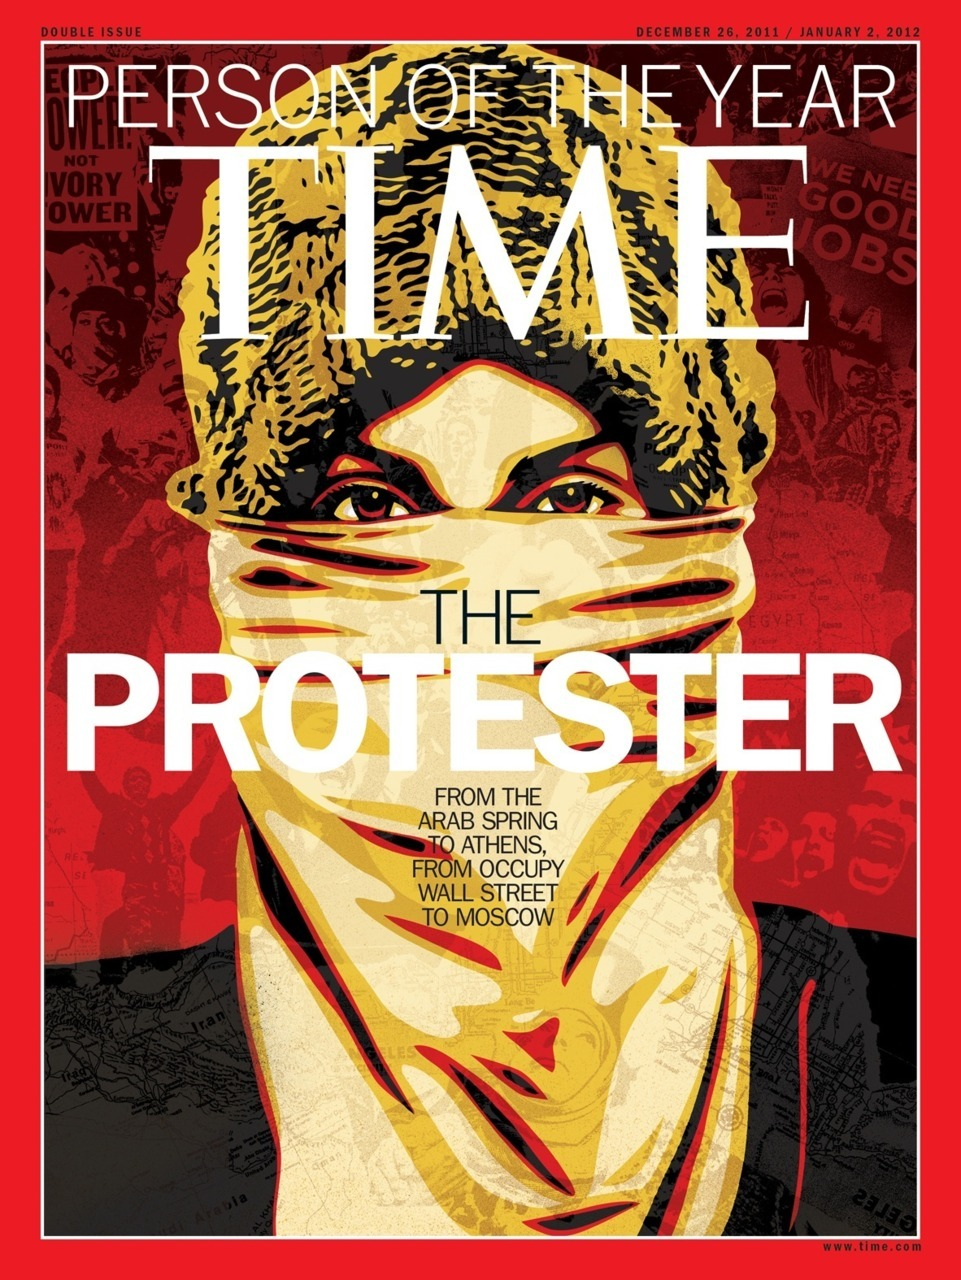 Good call, timemagazine:  TIME's 2011 Person of the Year is The Protester  ~reblogged by Trent Gilliss, senior editor